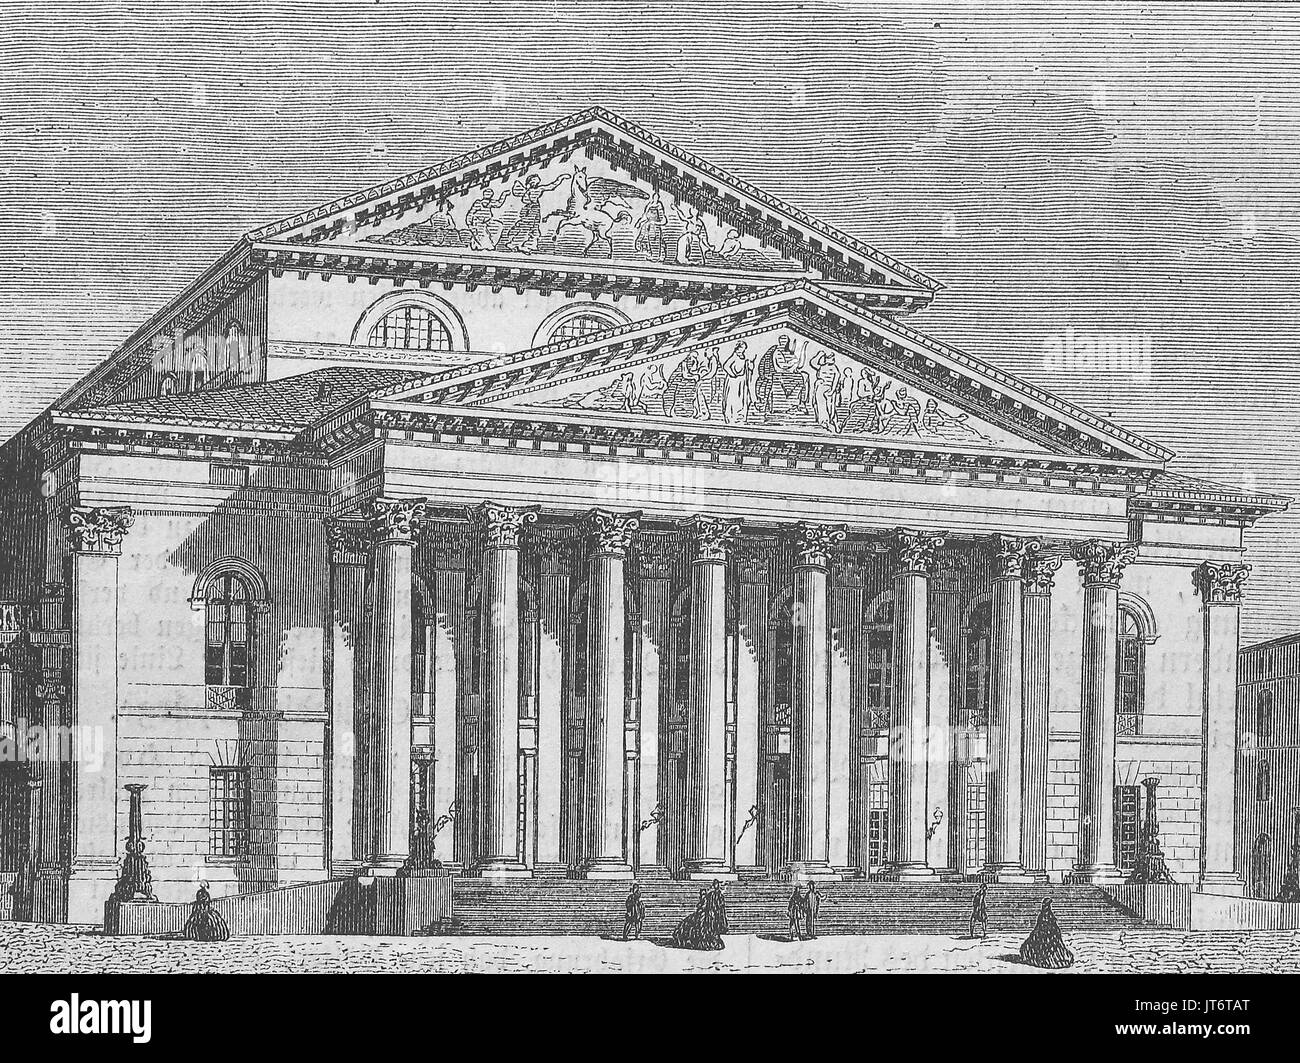 the Hoftheater at Munich, Bavaria, Germany, Digital improved reproduction of an image published between 1880 - 1885 - Stock Image